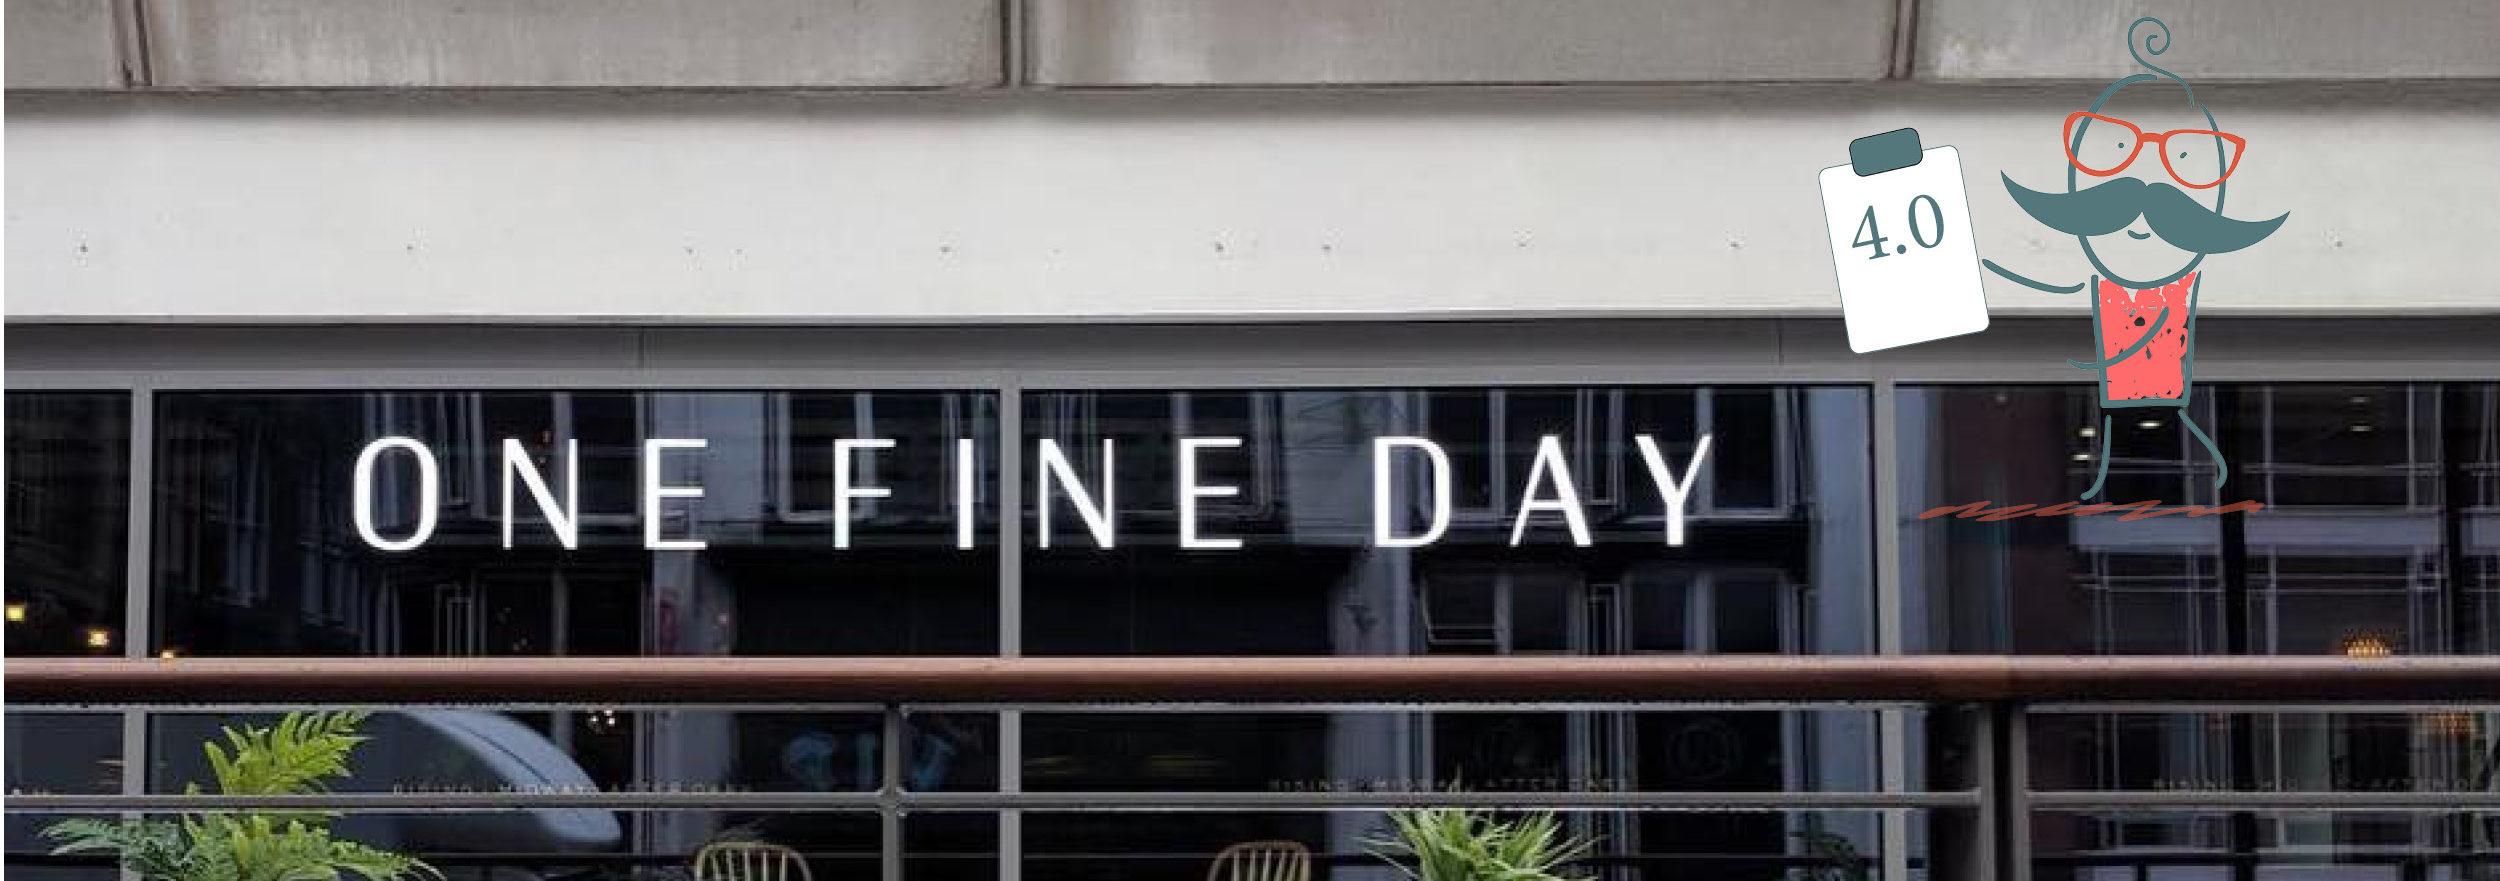 Faulty Review – One Fine Day,  Liverpool